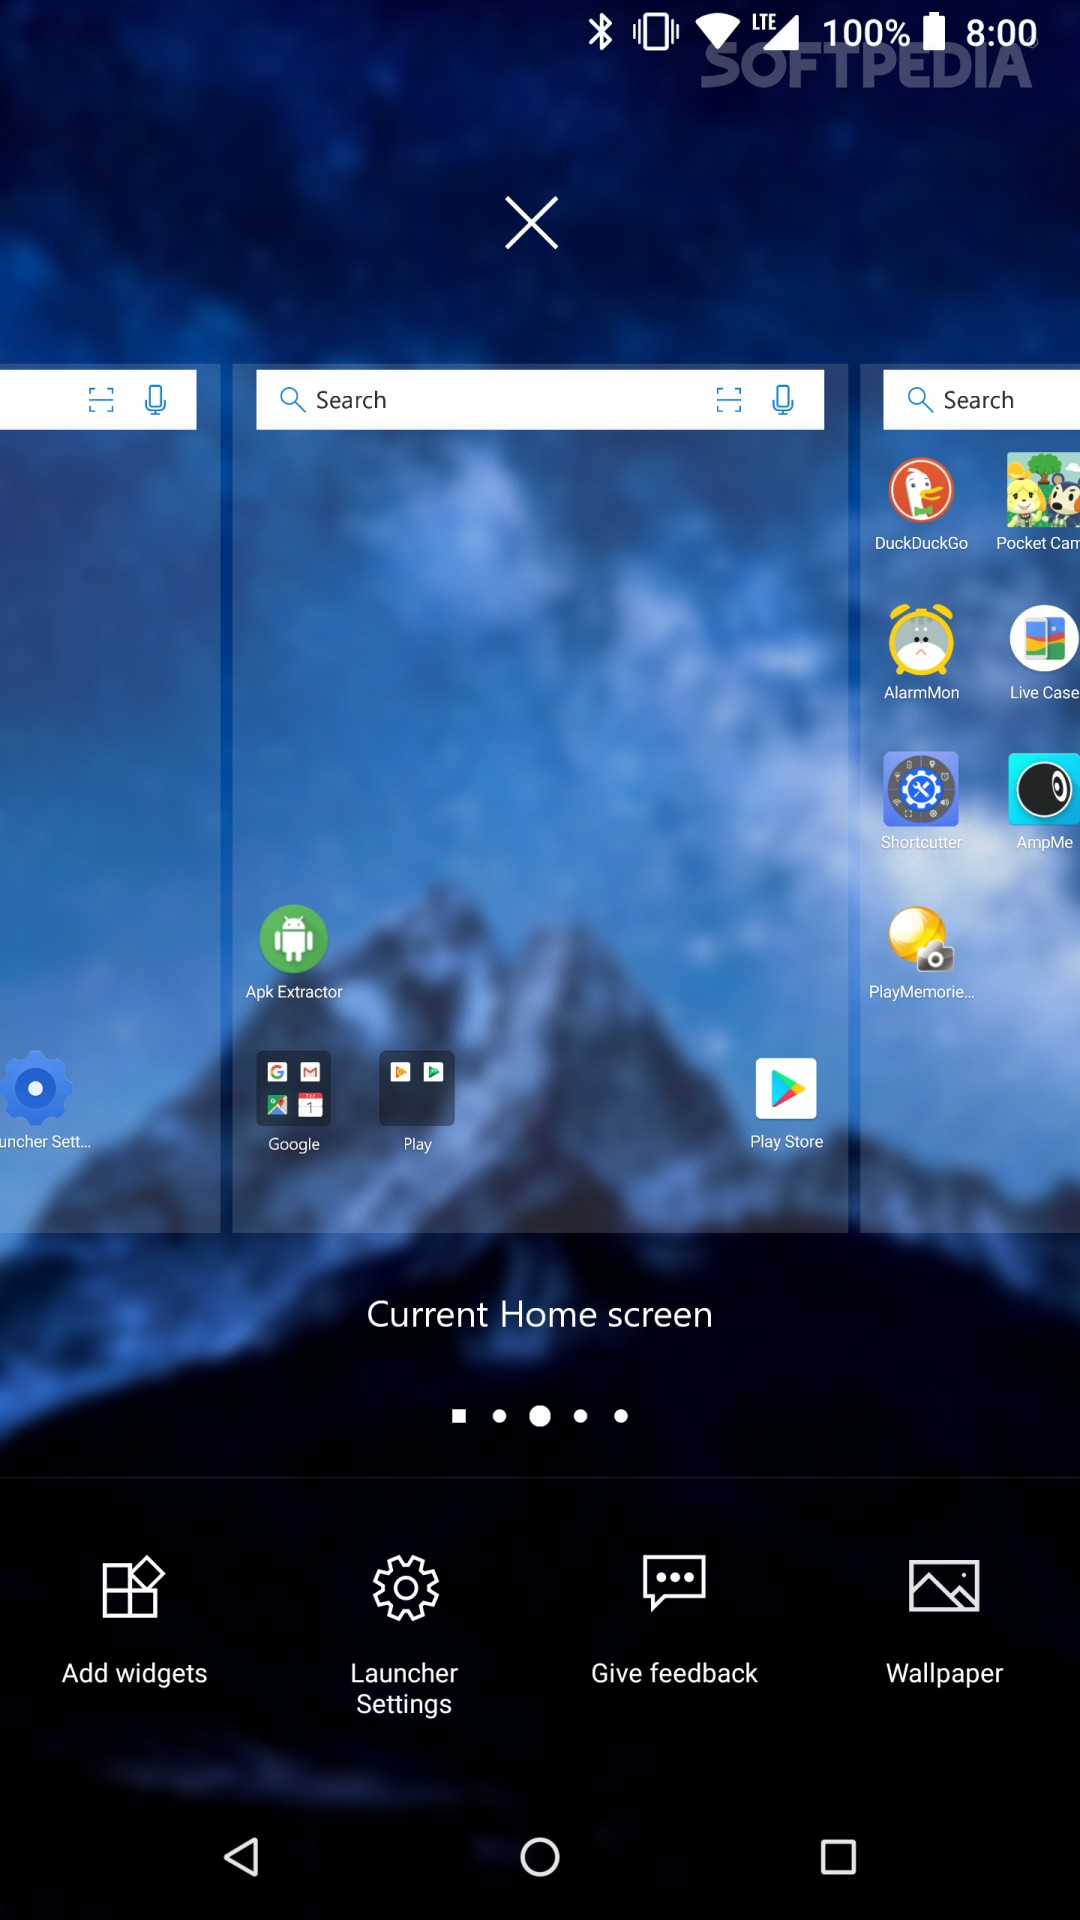 Microsoft Launcher for Android 4 6 (Beta) Released with Major New